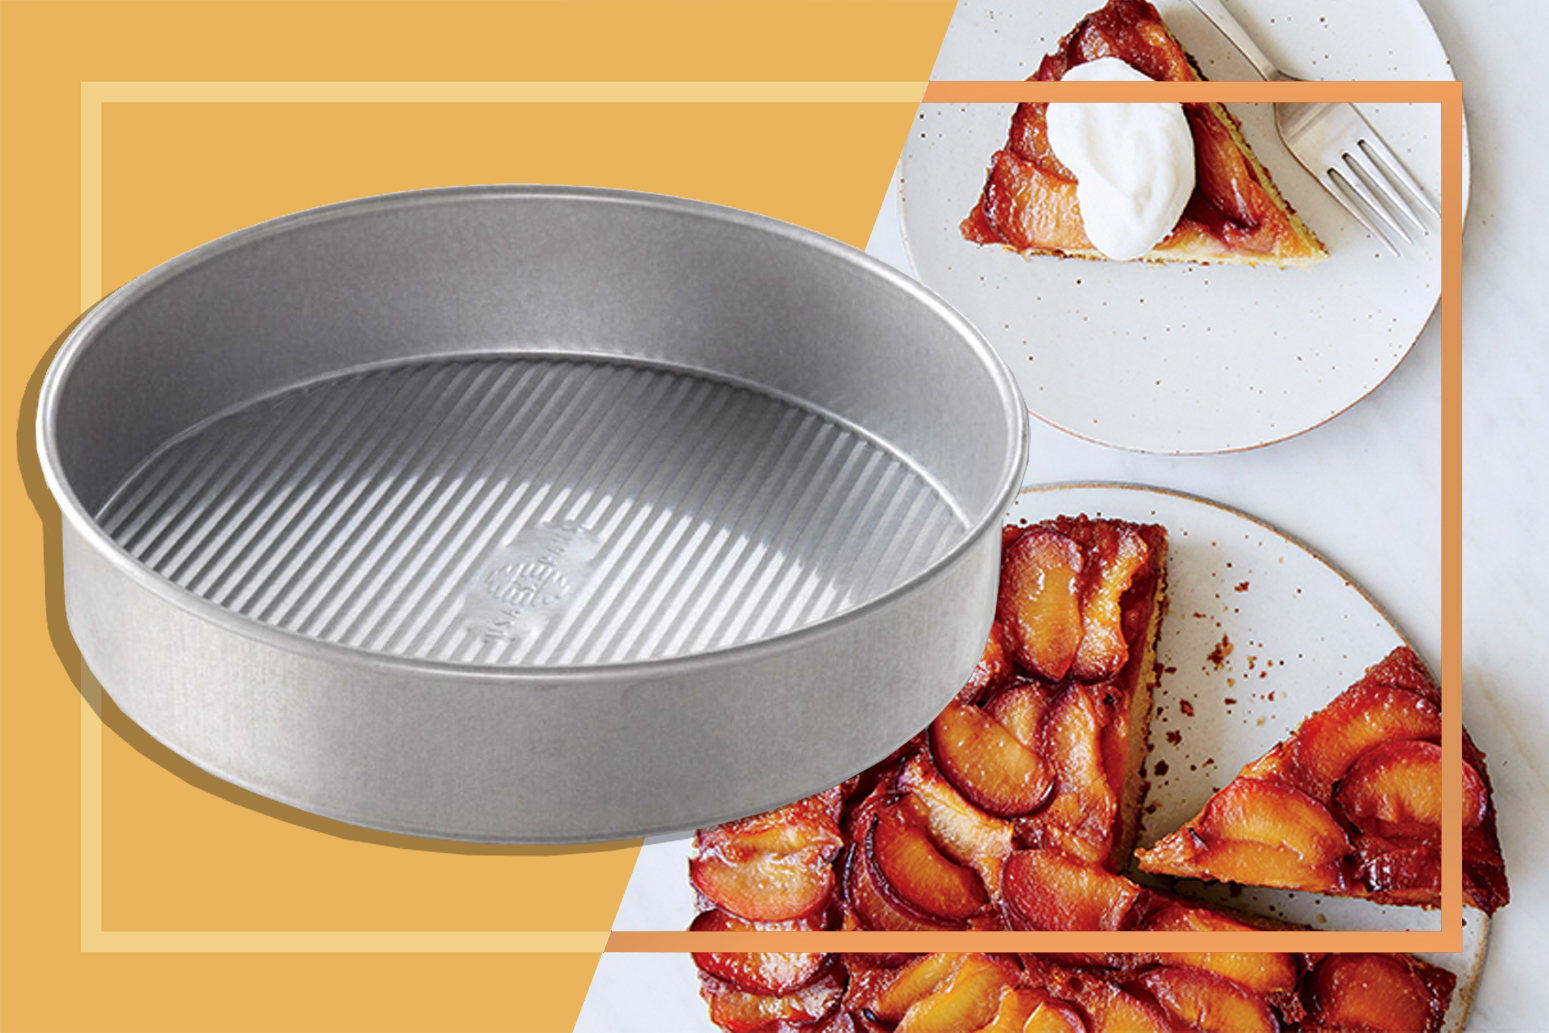 Baking Pans For Every Kind of Cake